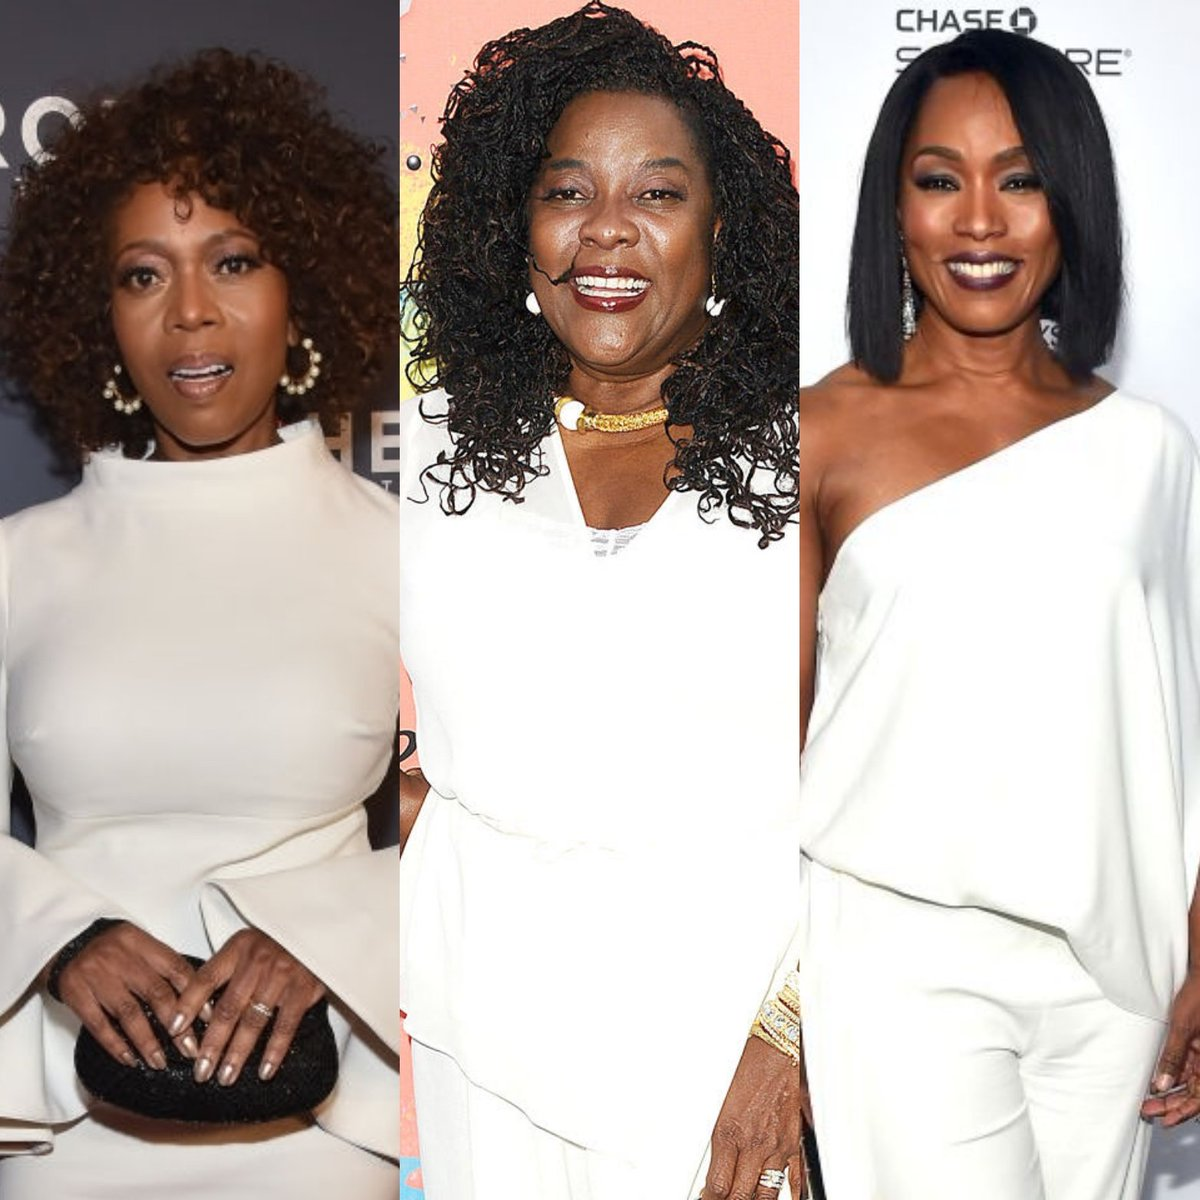 OK so I'm putting it out in the Universe that I get to see a remake of #TheFirstWivesClub in my life time but I want an all black cast with these fabulous leading women 🙏🏾  @AlfreWoodard as Annie @lodivadevine as Brenda @ImAngelaBassett as Elise https://t.co/QbAQJKsl46